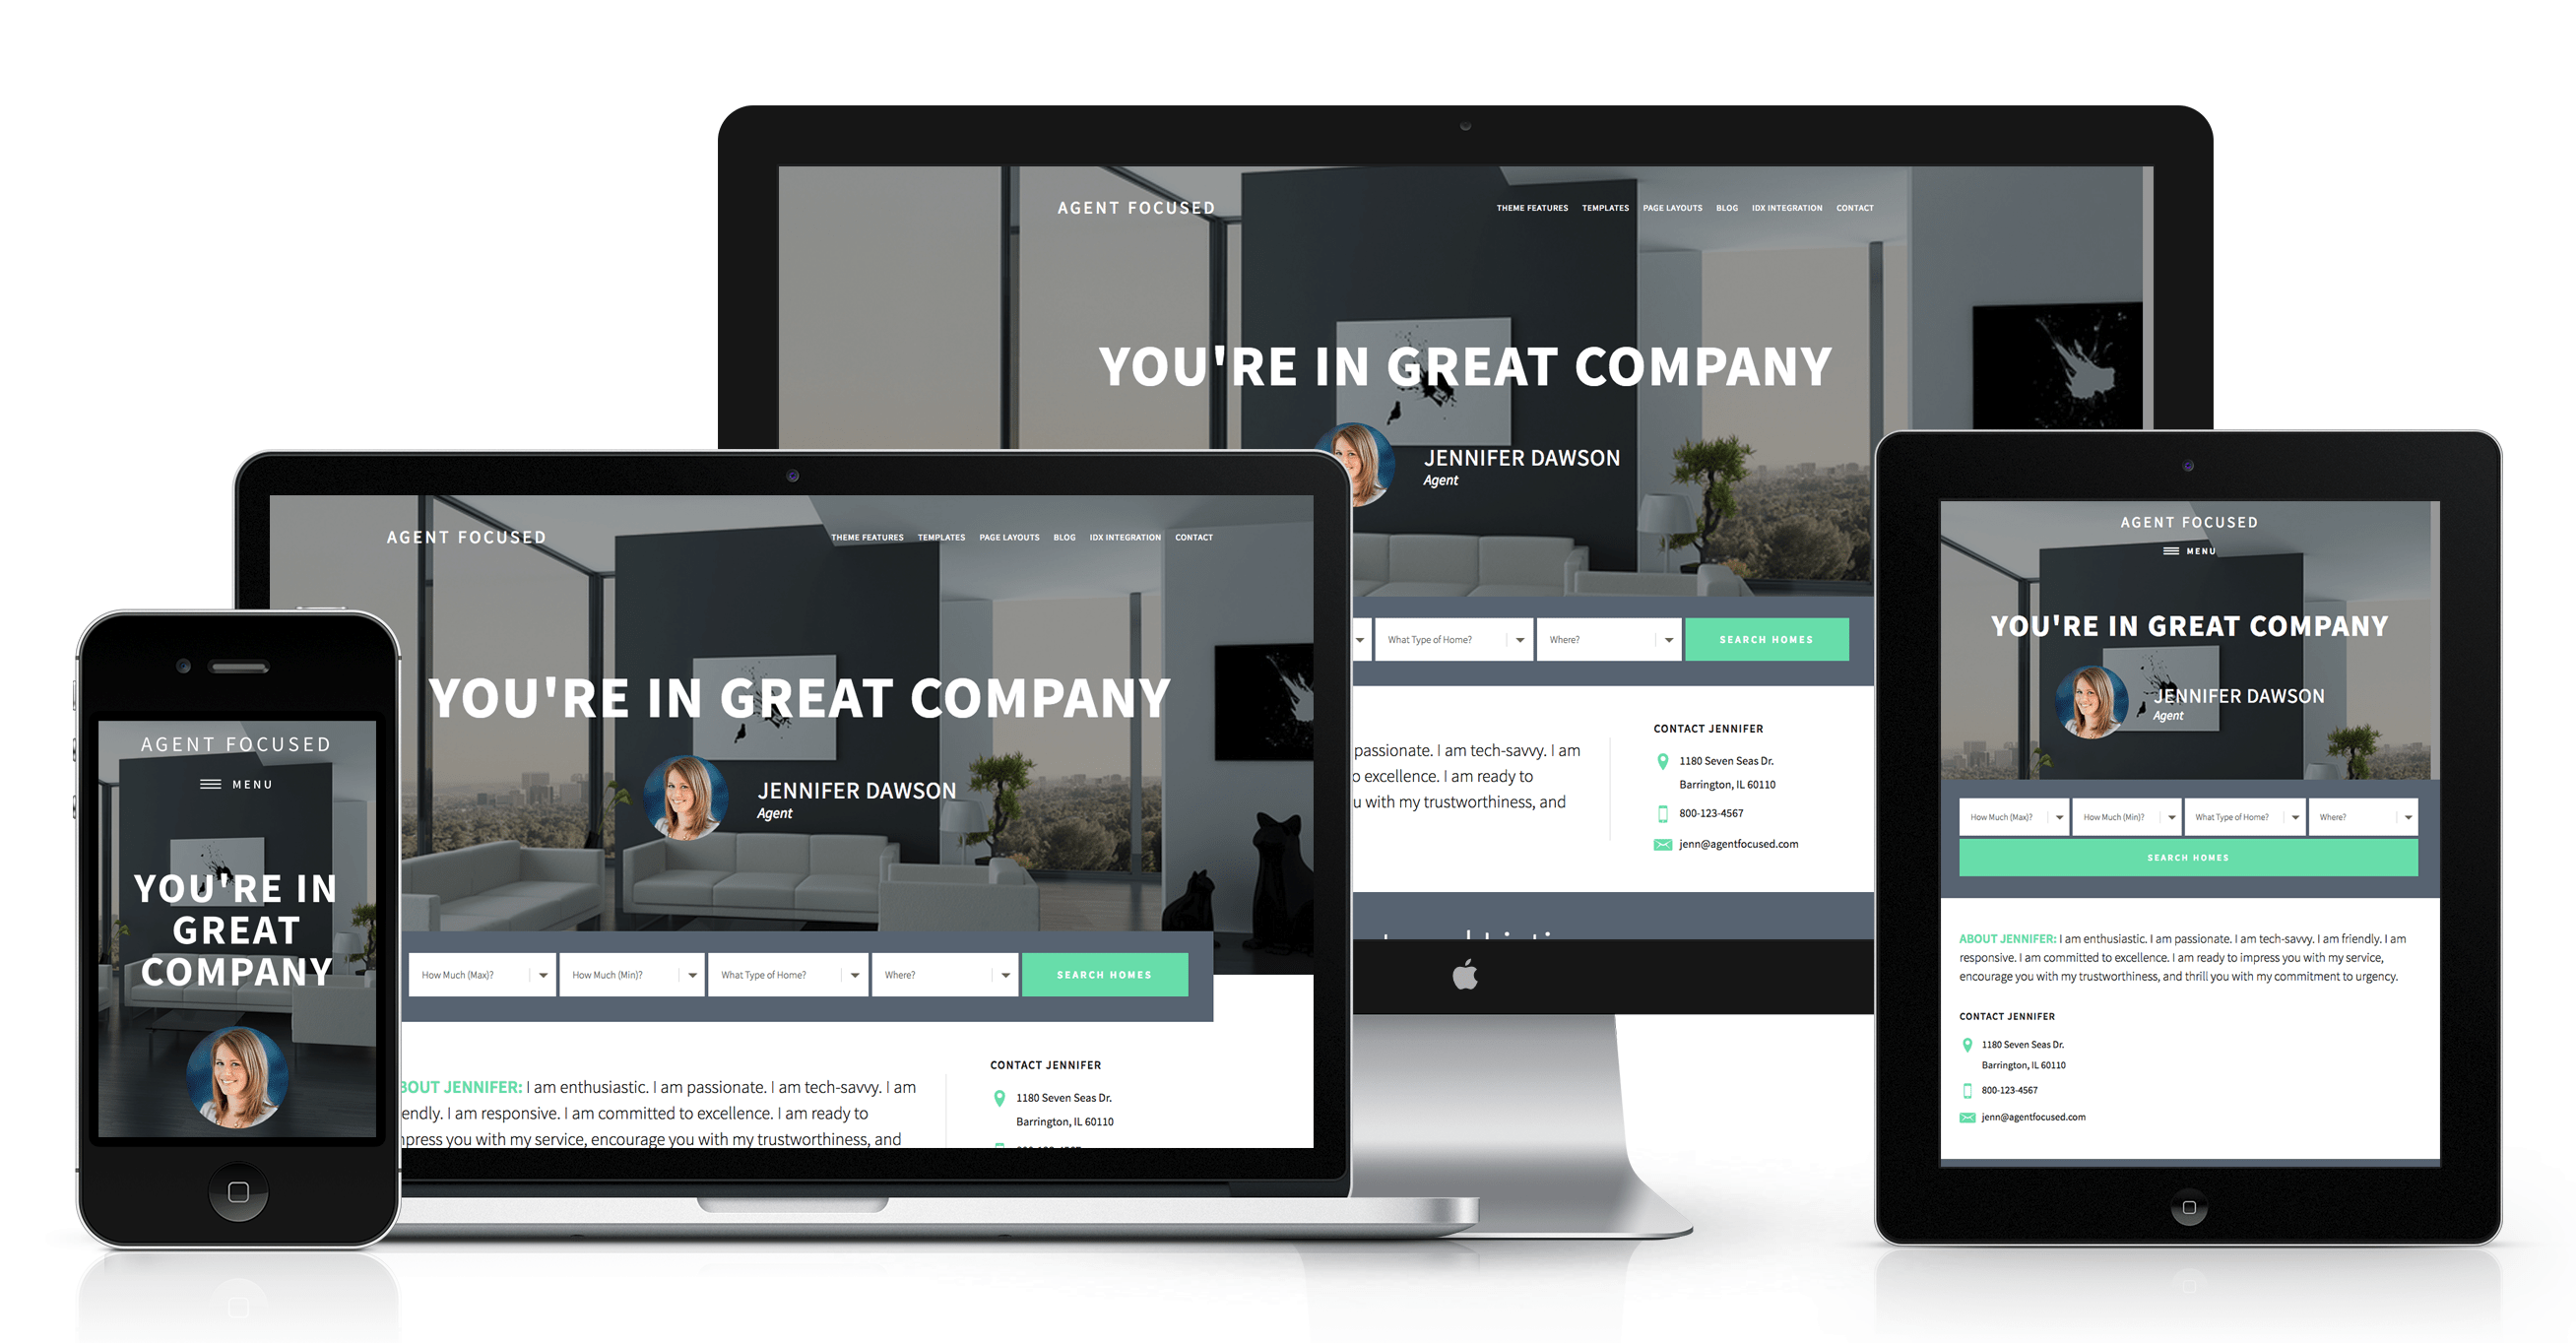 agent-focused-pro-responsive-mockup-white